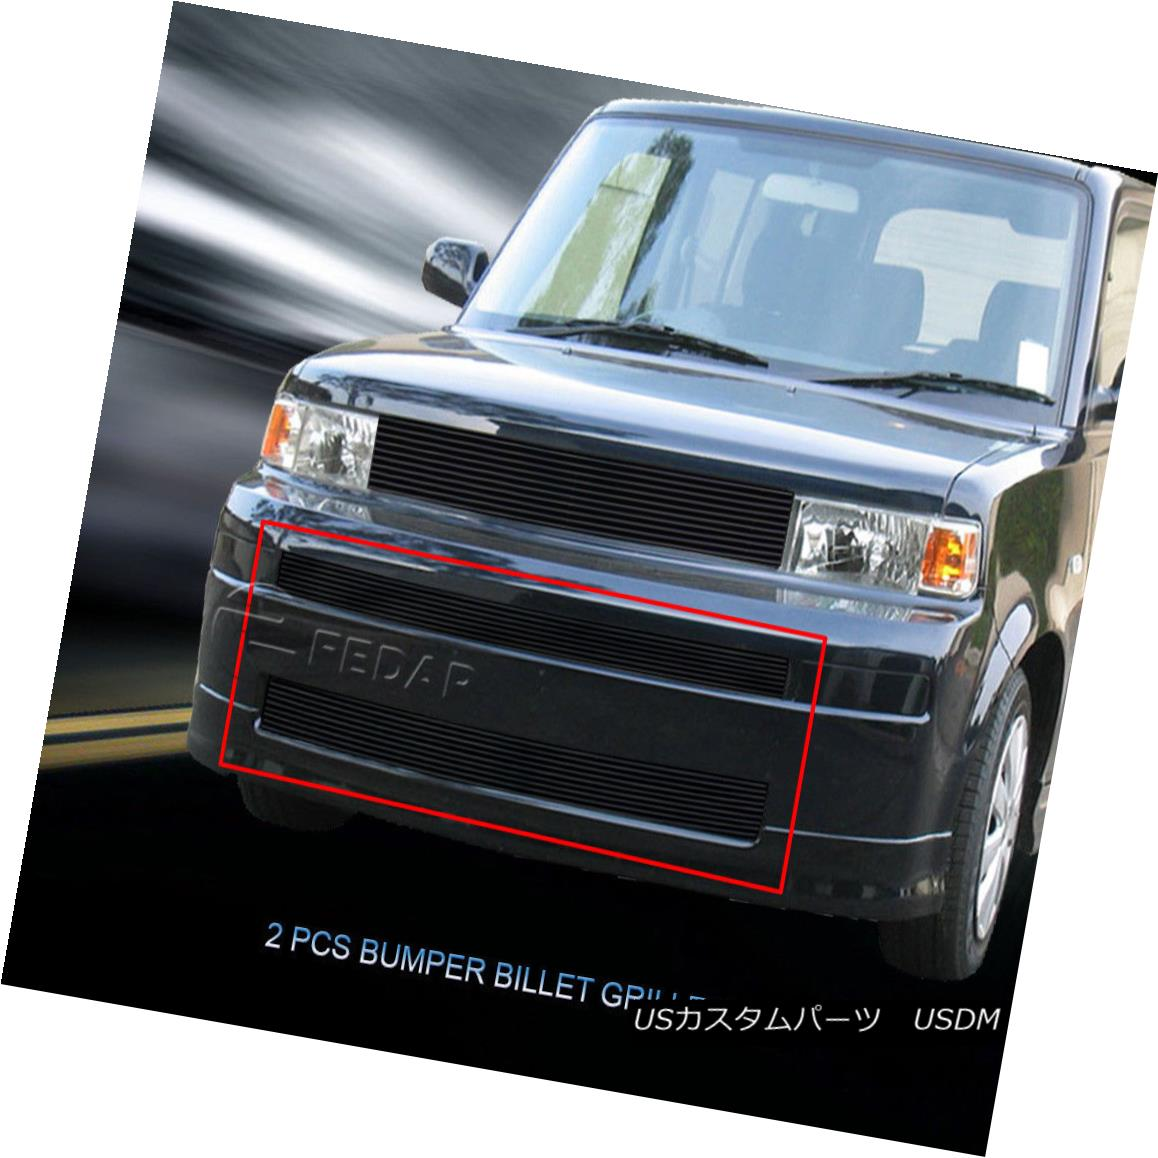 グリル Fedar Fits 03-07 Scion XB Black Billet Grille Overlay Fedar Fits 03-07 Scion XBブラックビレットグリルオーバーレイ